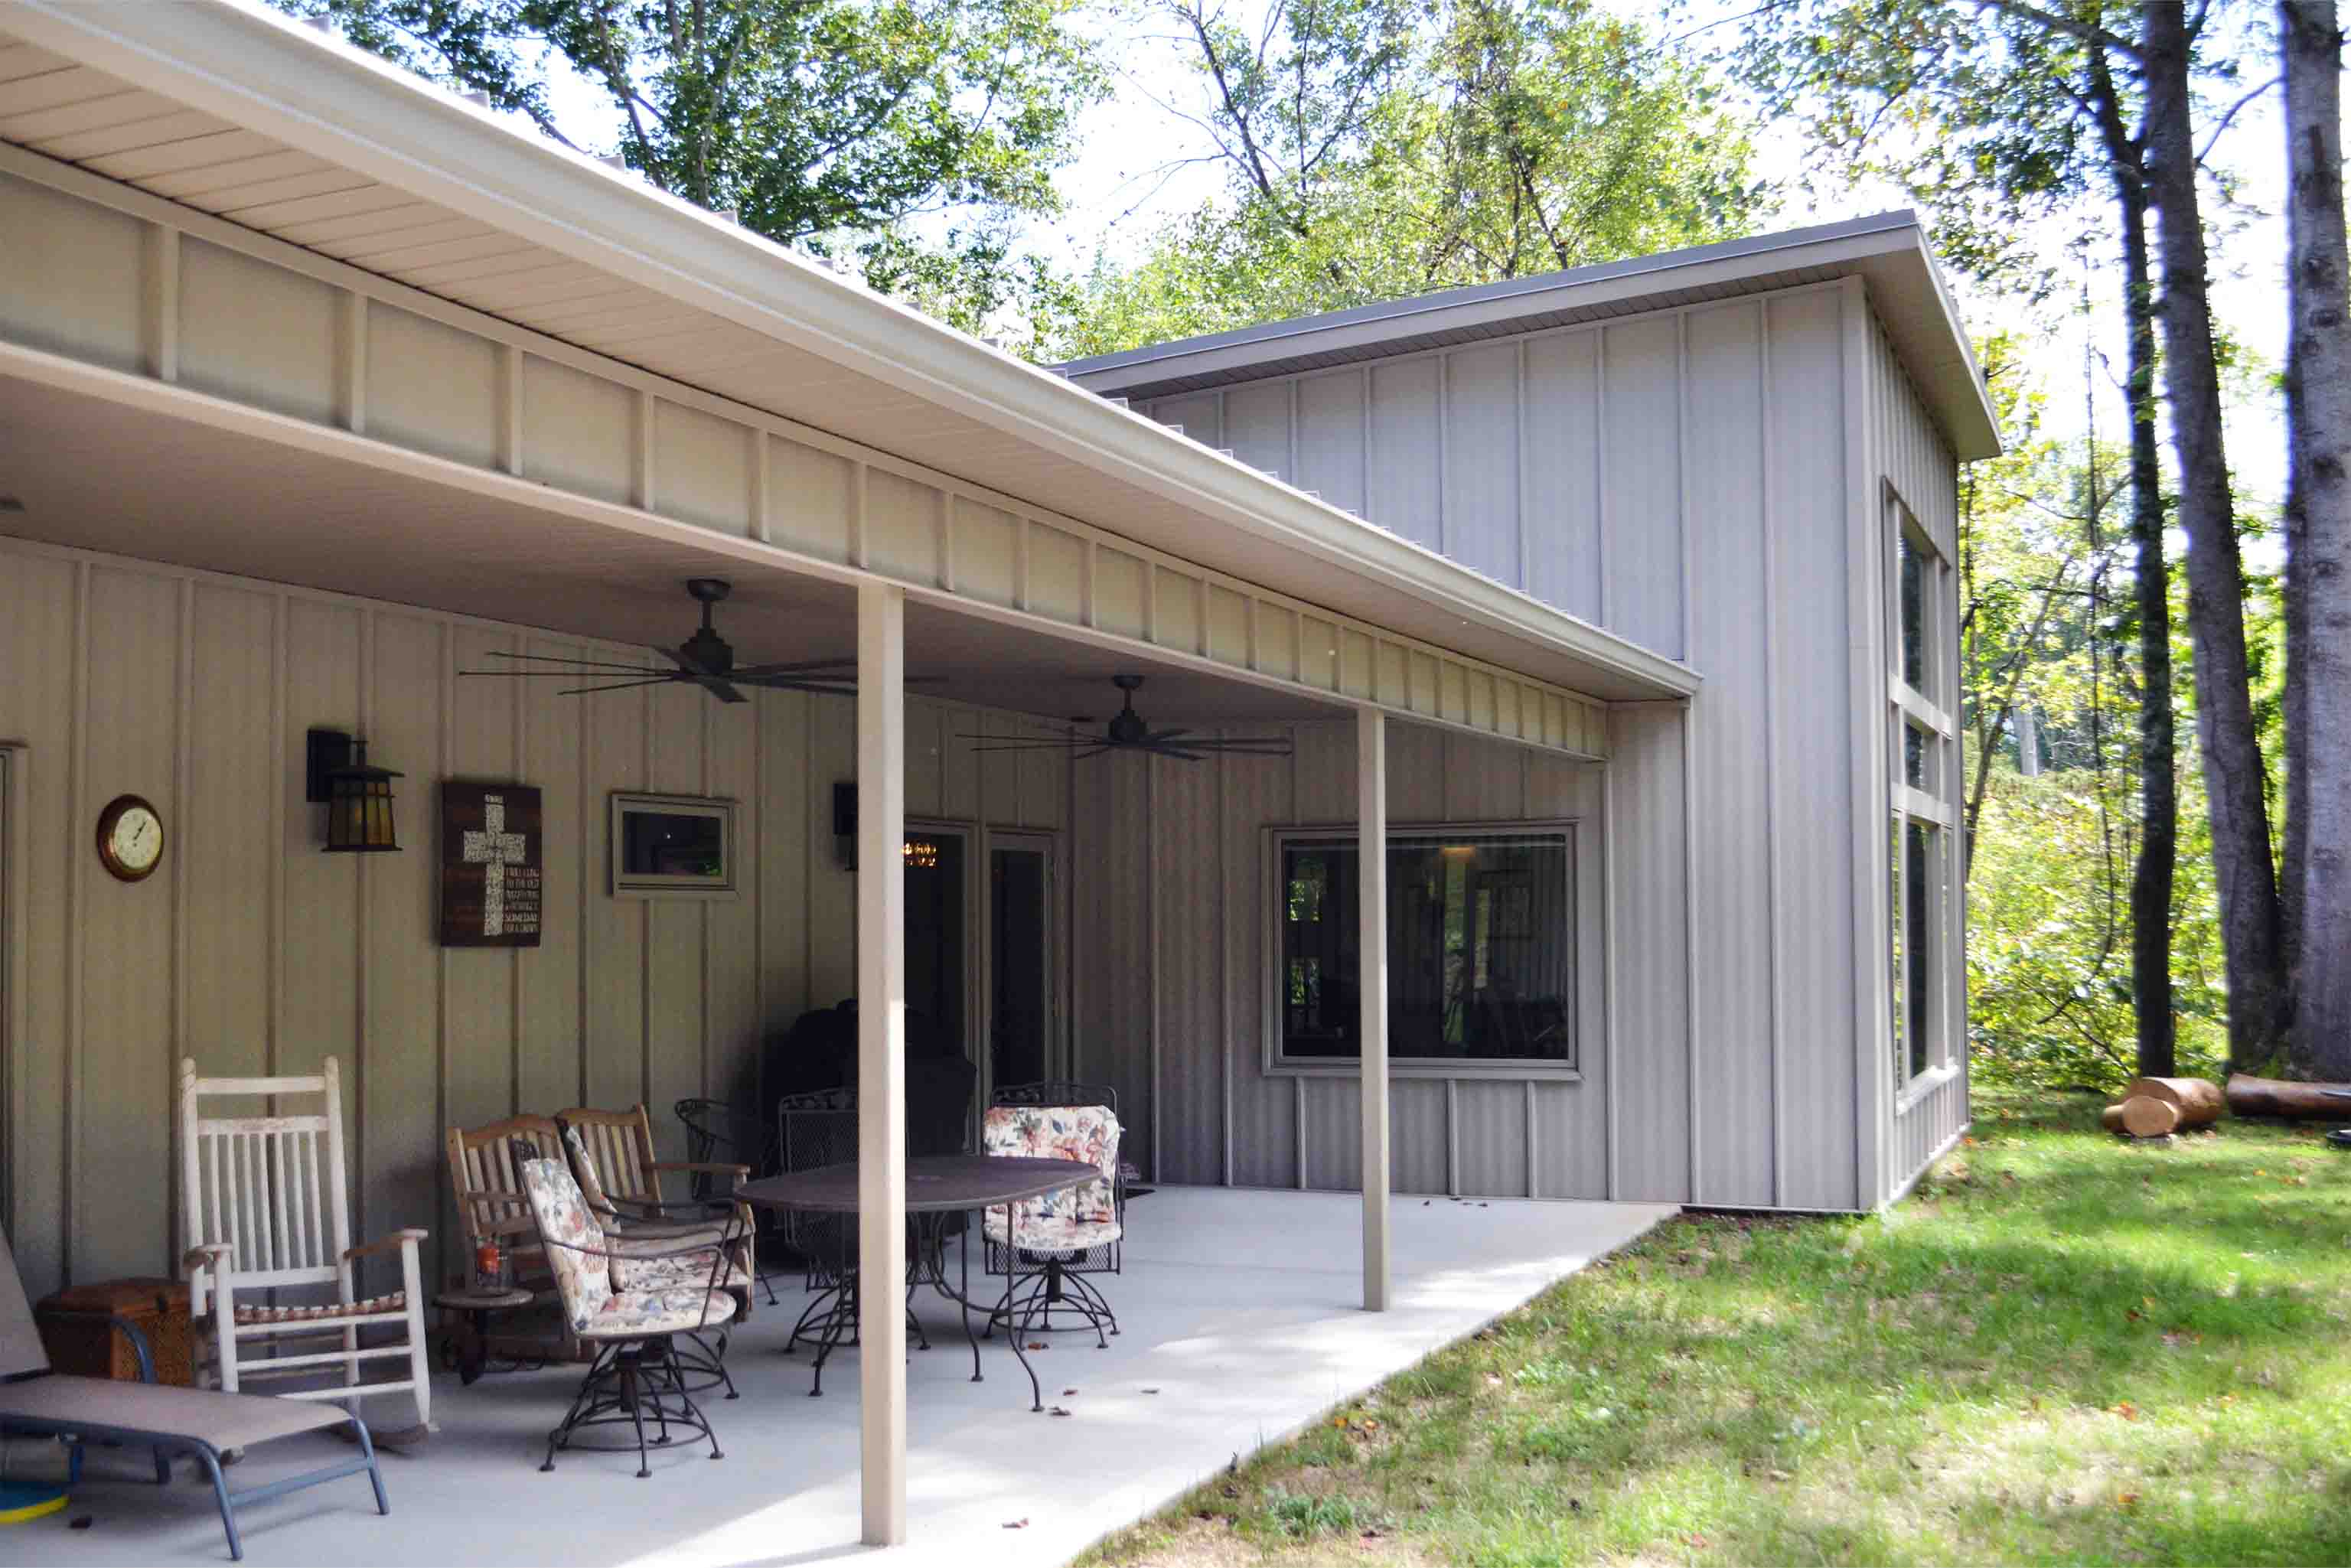 Truoba built house porch in Tennessee